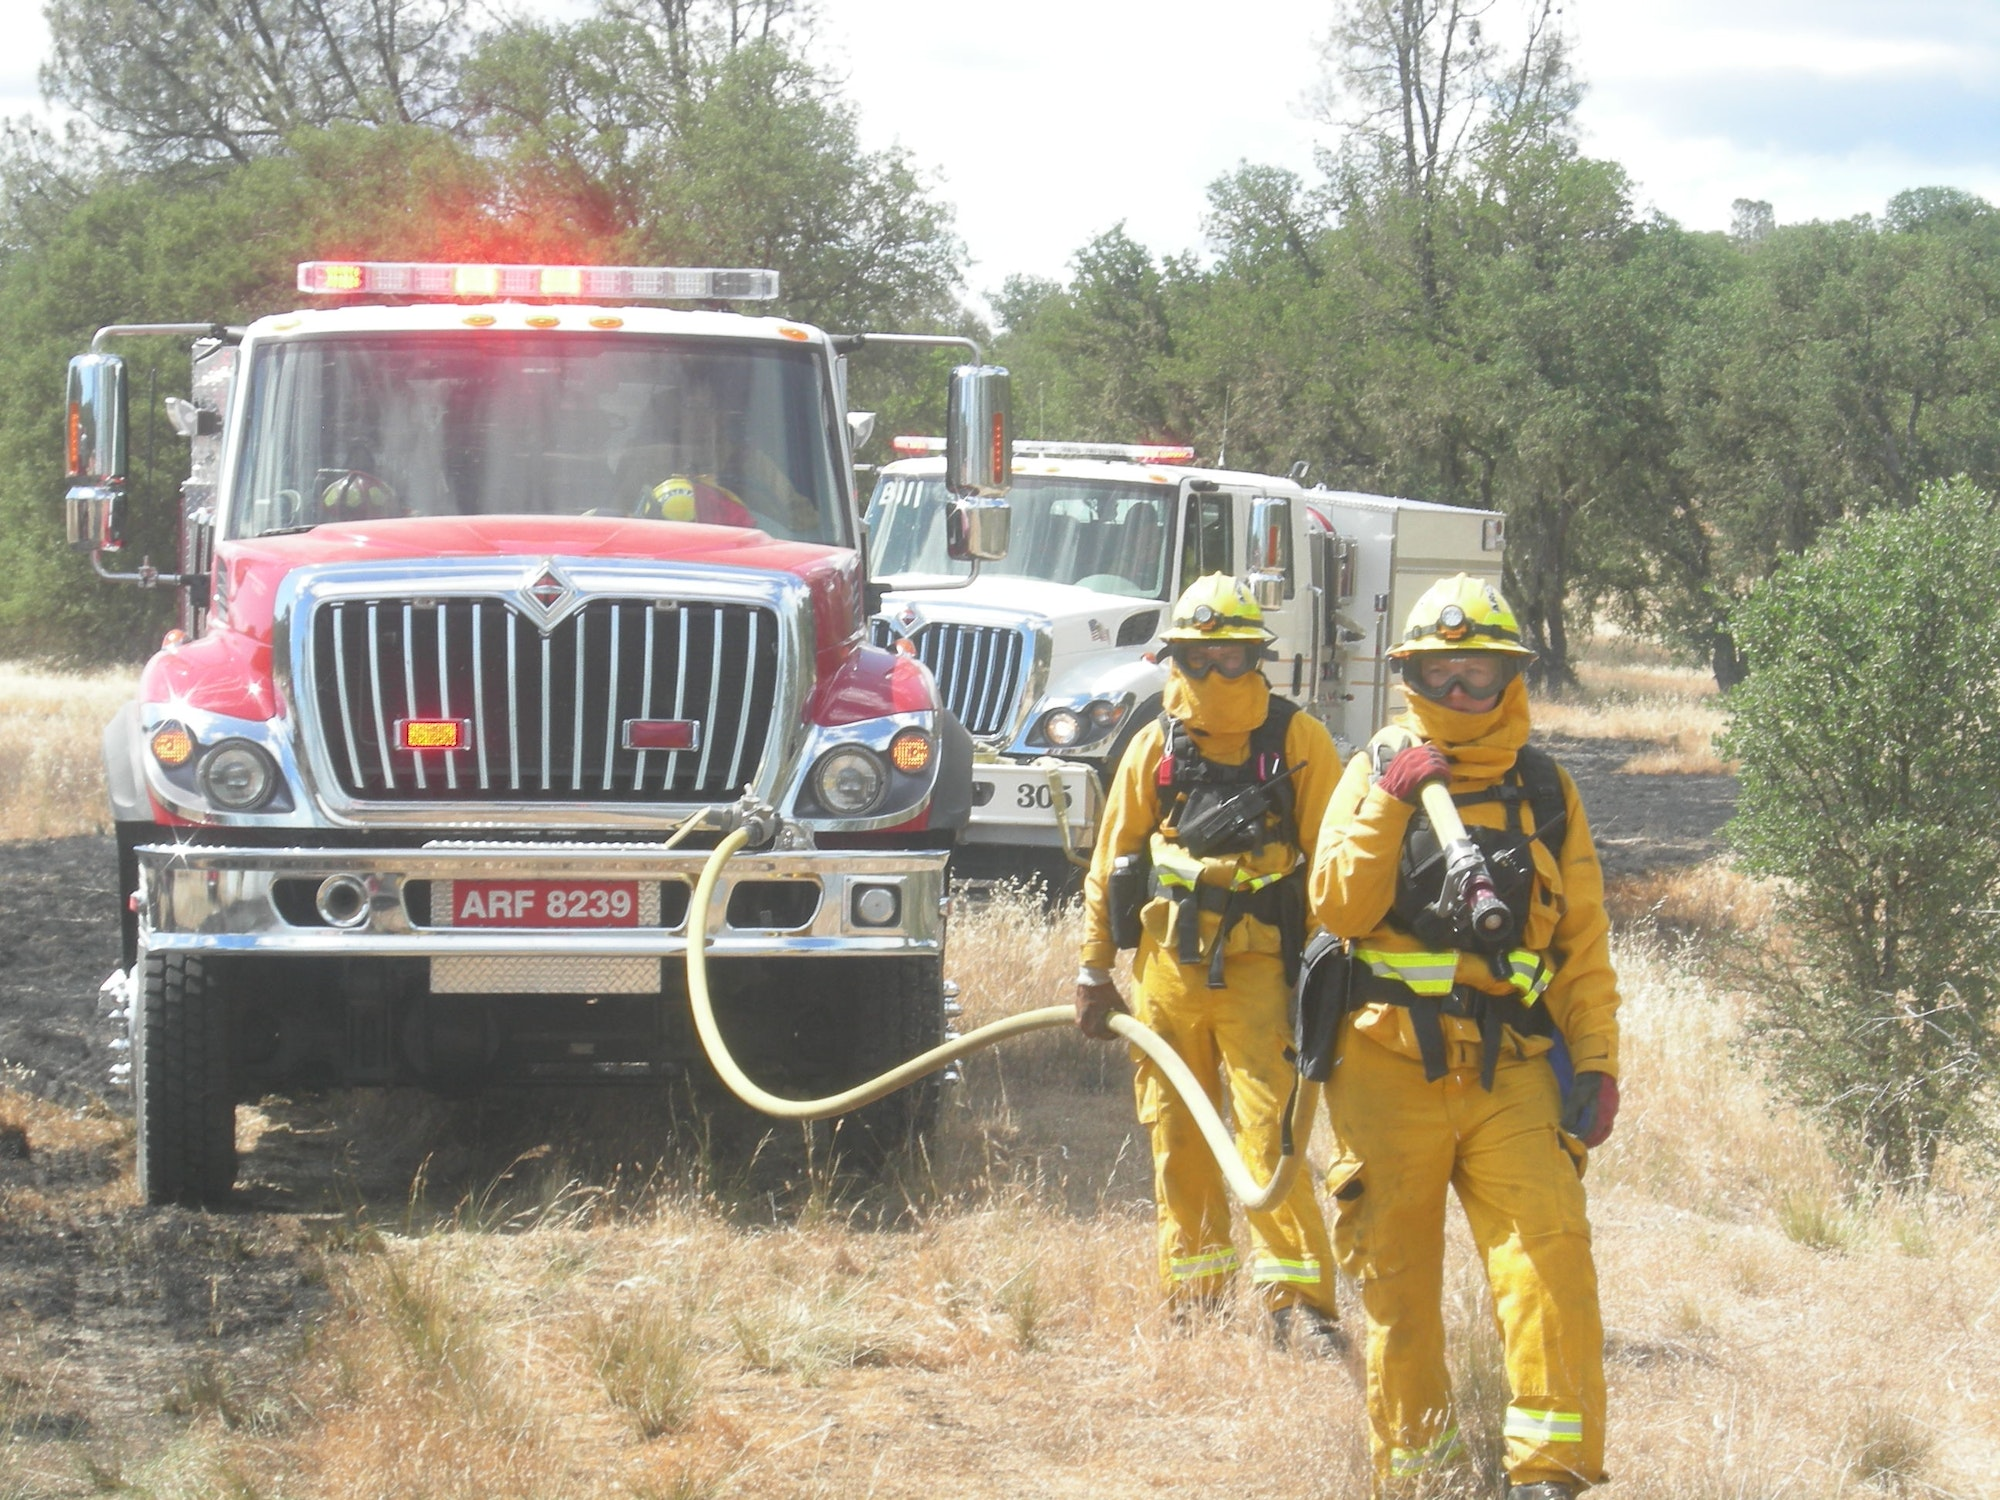 Firefighters performing pump and roll on a training burn at Fort Hunter Ligget.